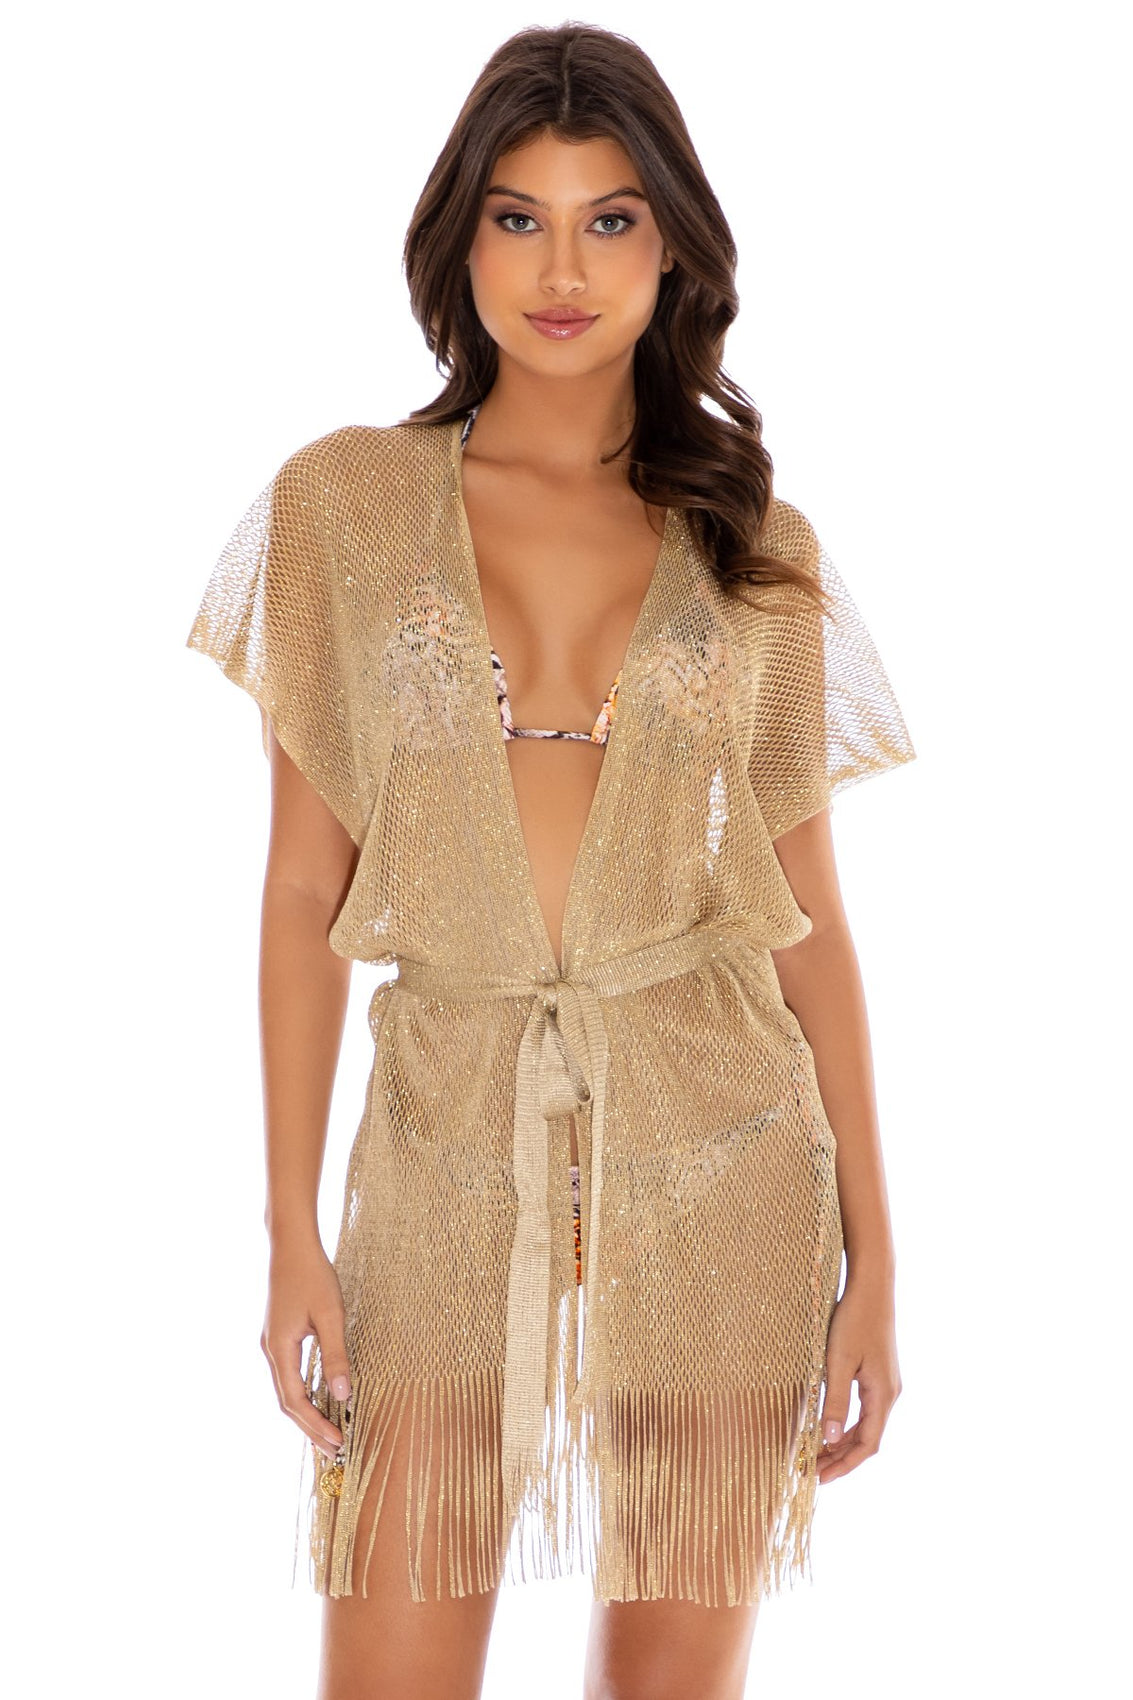 GOLDEN QUEEN - Short Caftan • Gold Rush